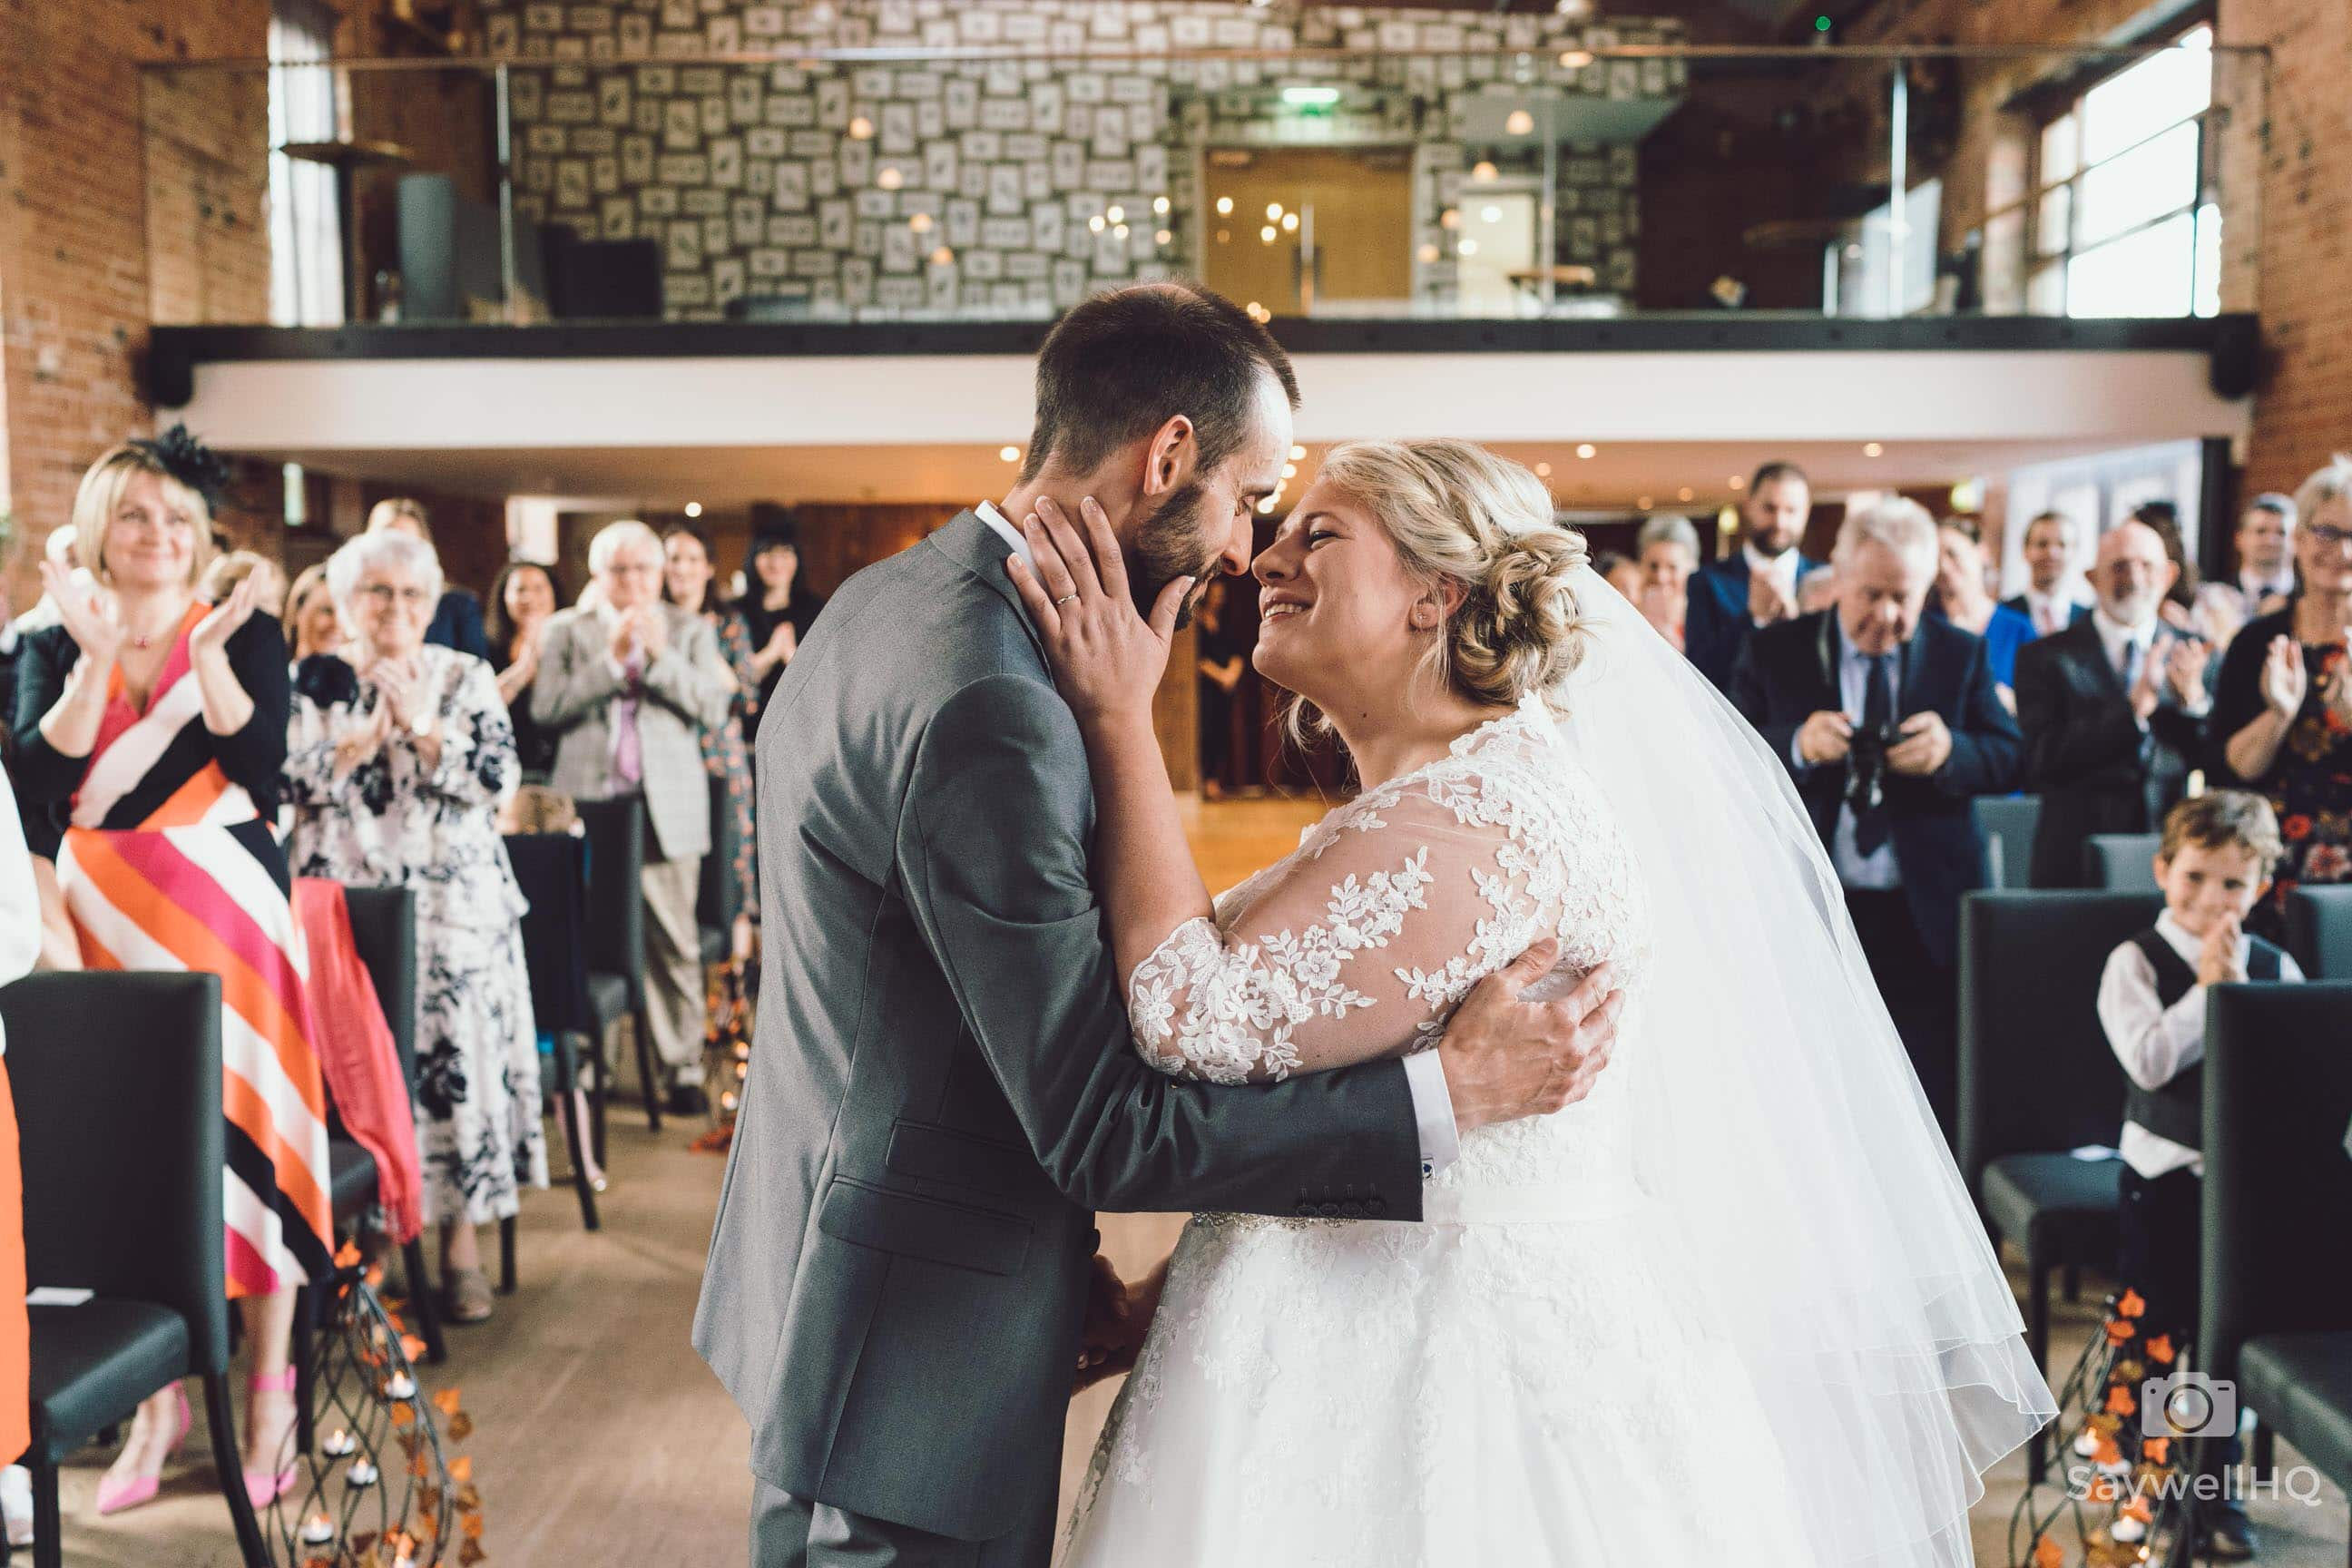 Wedding photography at The Carriage Hall in Nottingham + Bride and groom first kiss